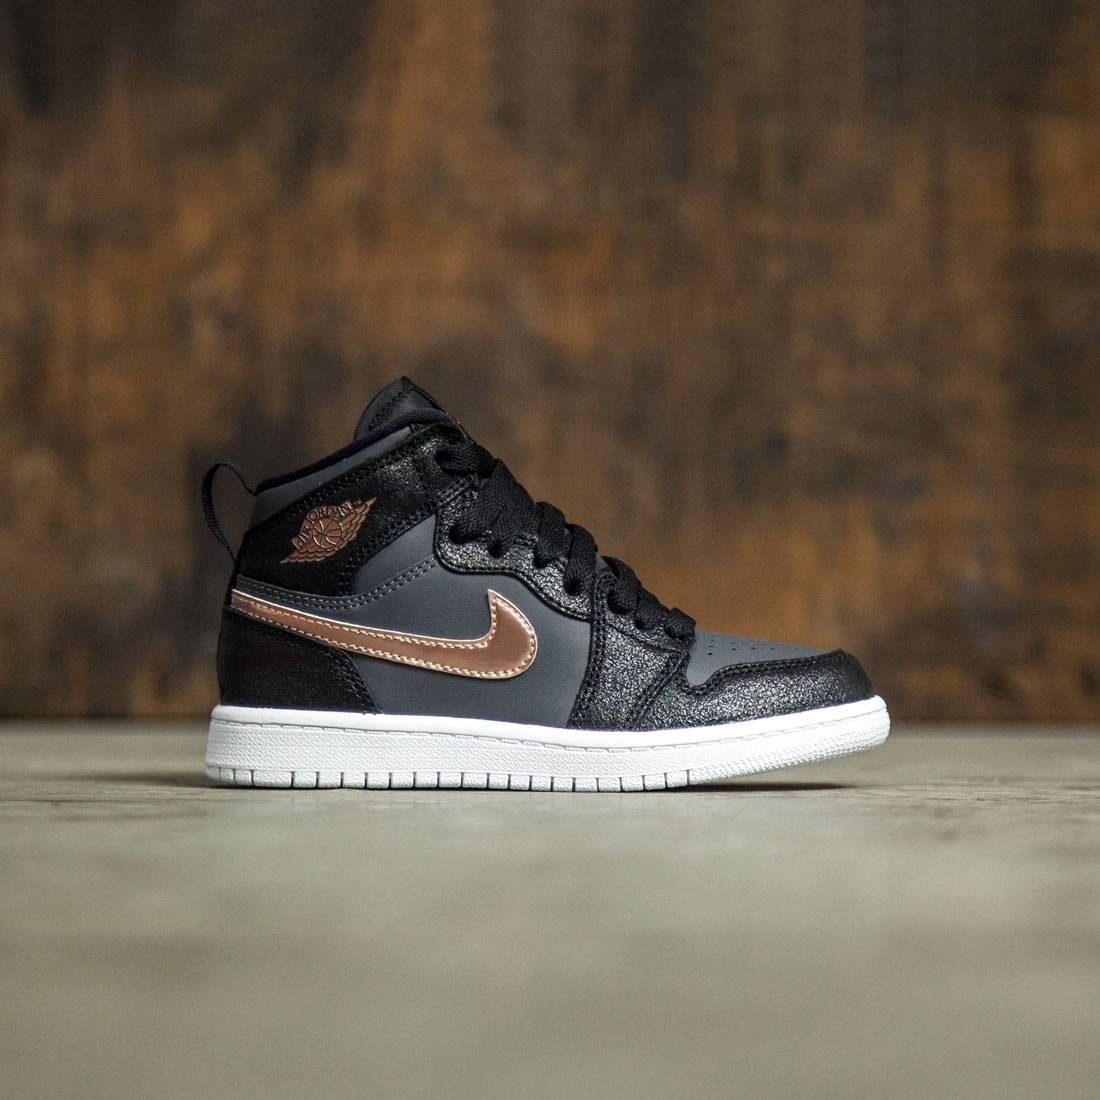 reputable site a5476 039c6 On-Foot  Air Jordan 1 Retro Low OG Premium